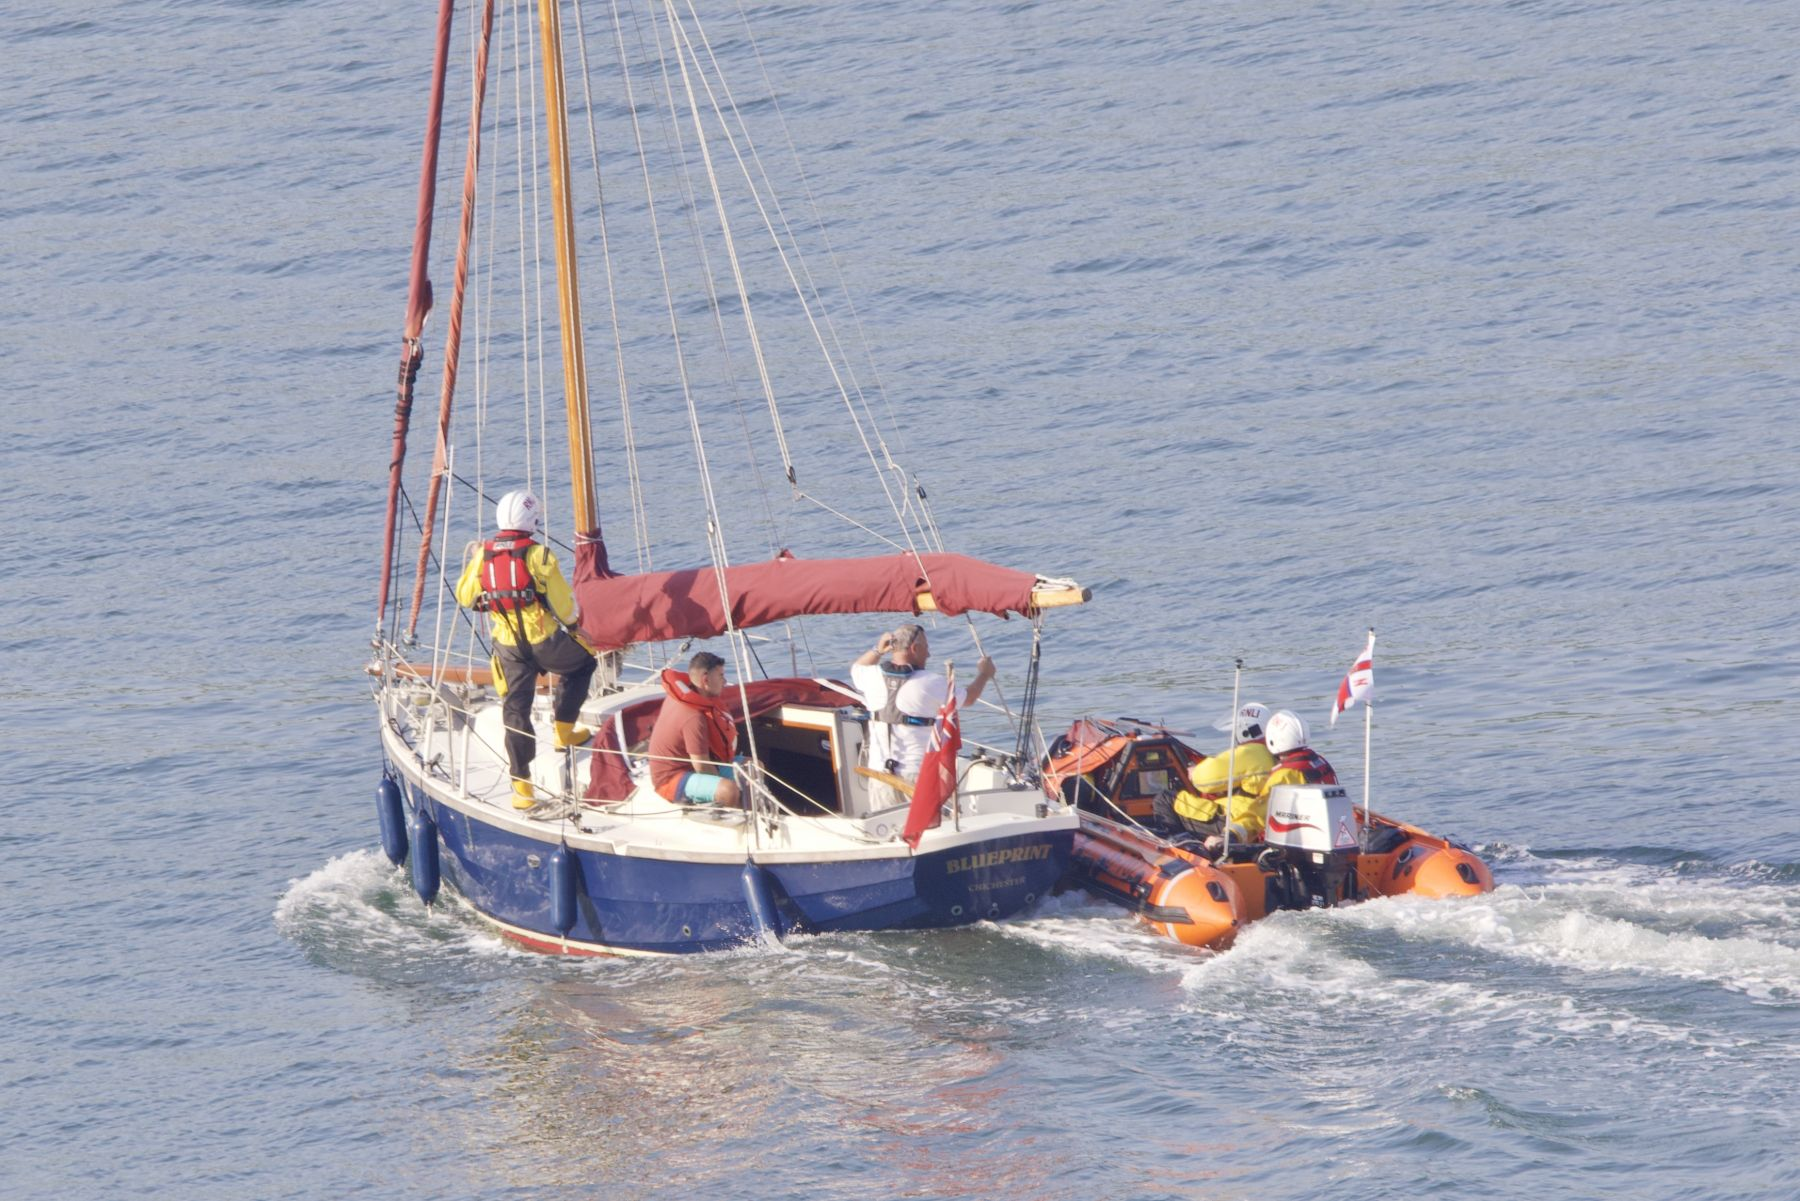 Cornish Crabber under tow in Dartmouth Harbour